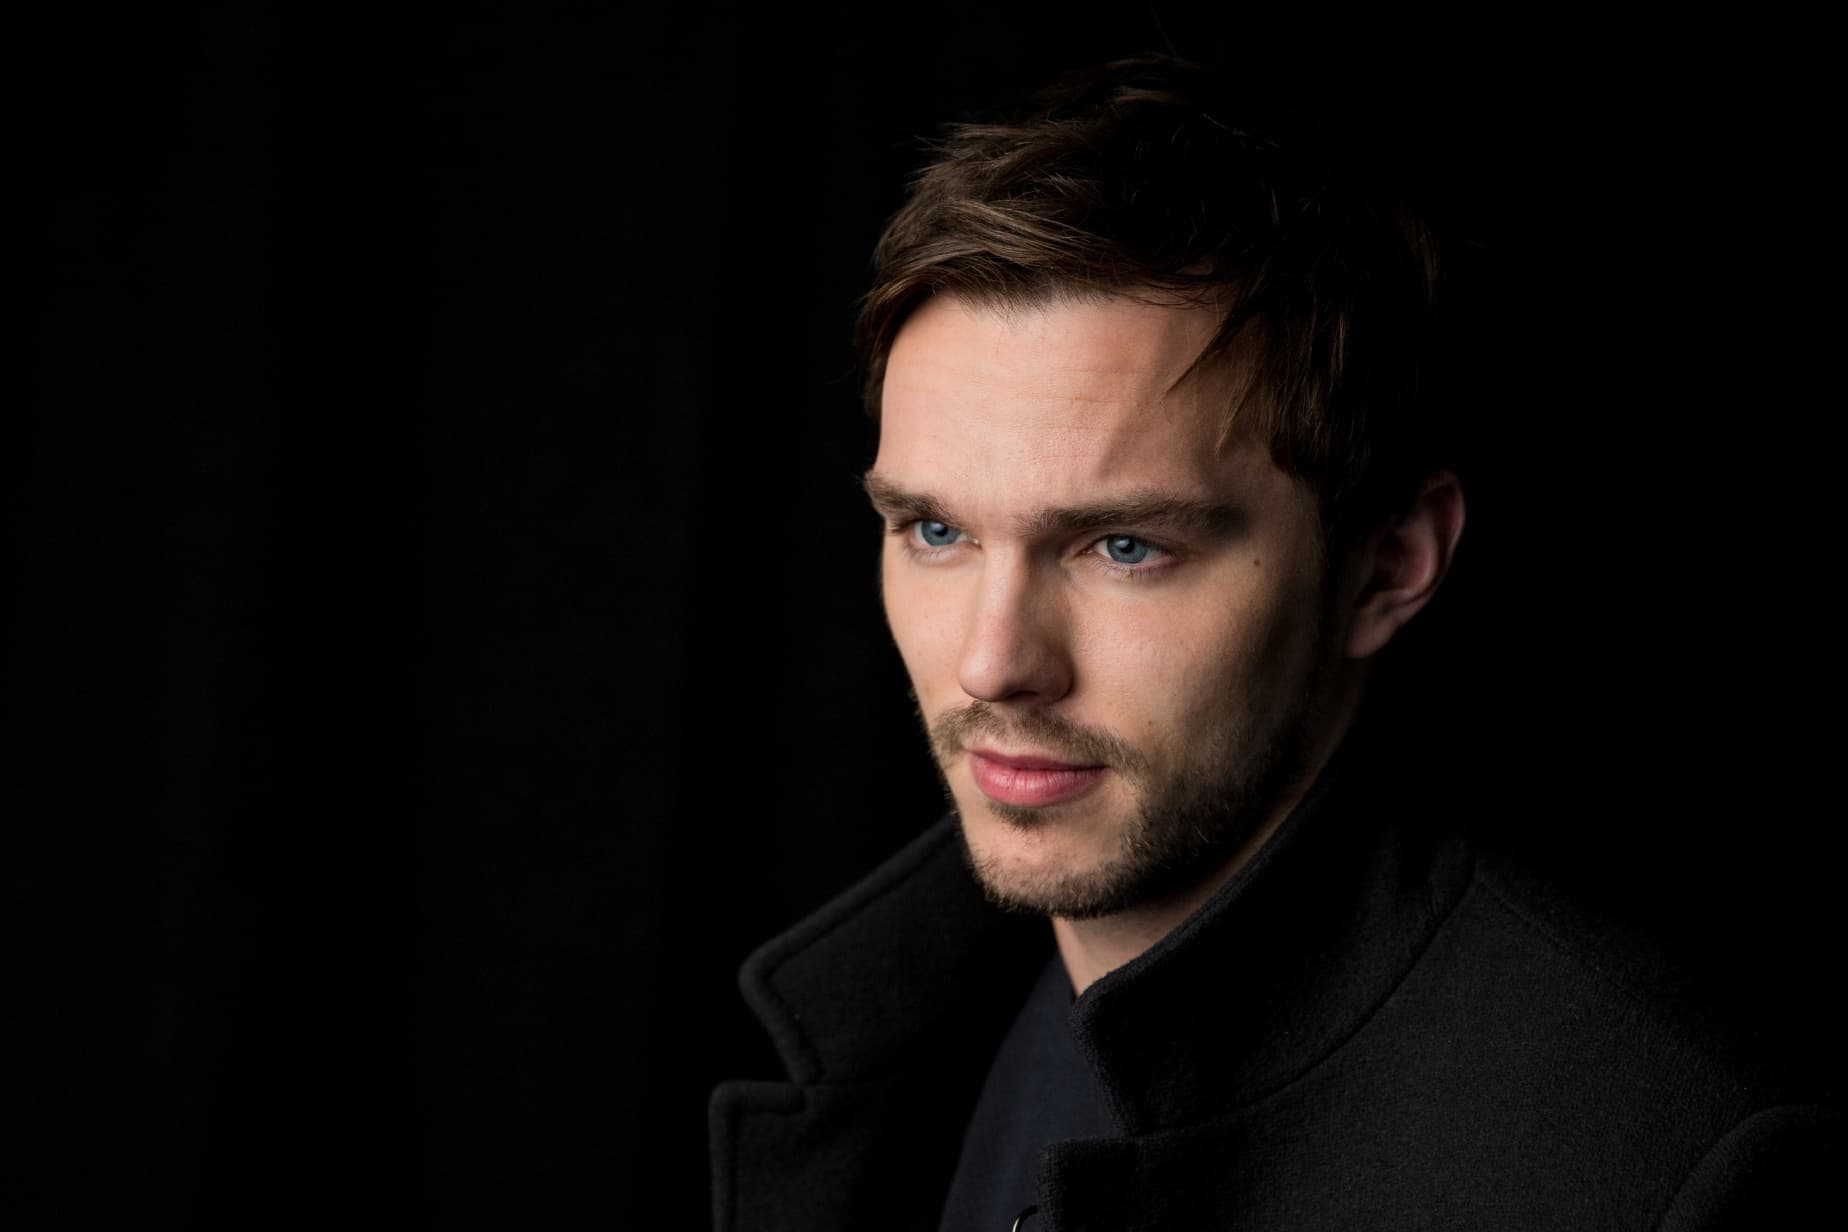 Nicholas Hoult Wallpapers and Background Images   stmednet 1848x1232